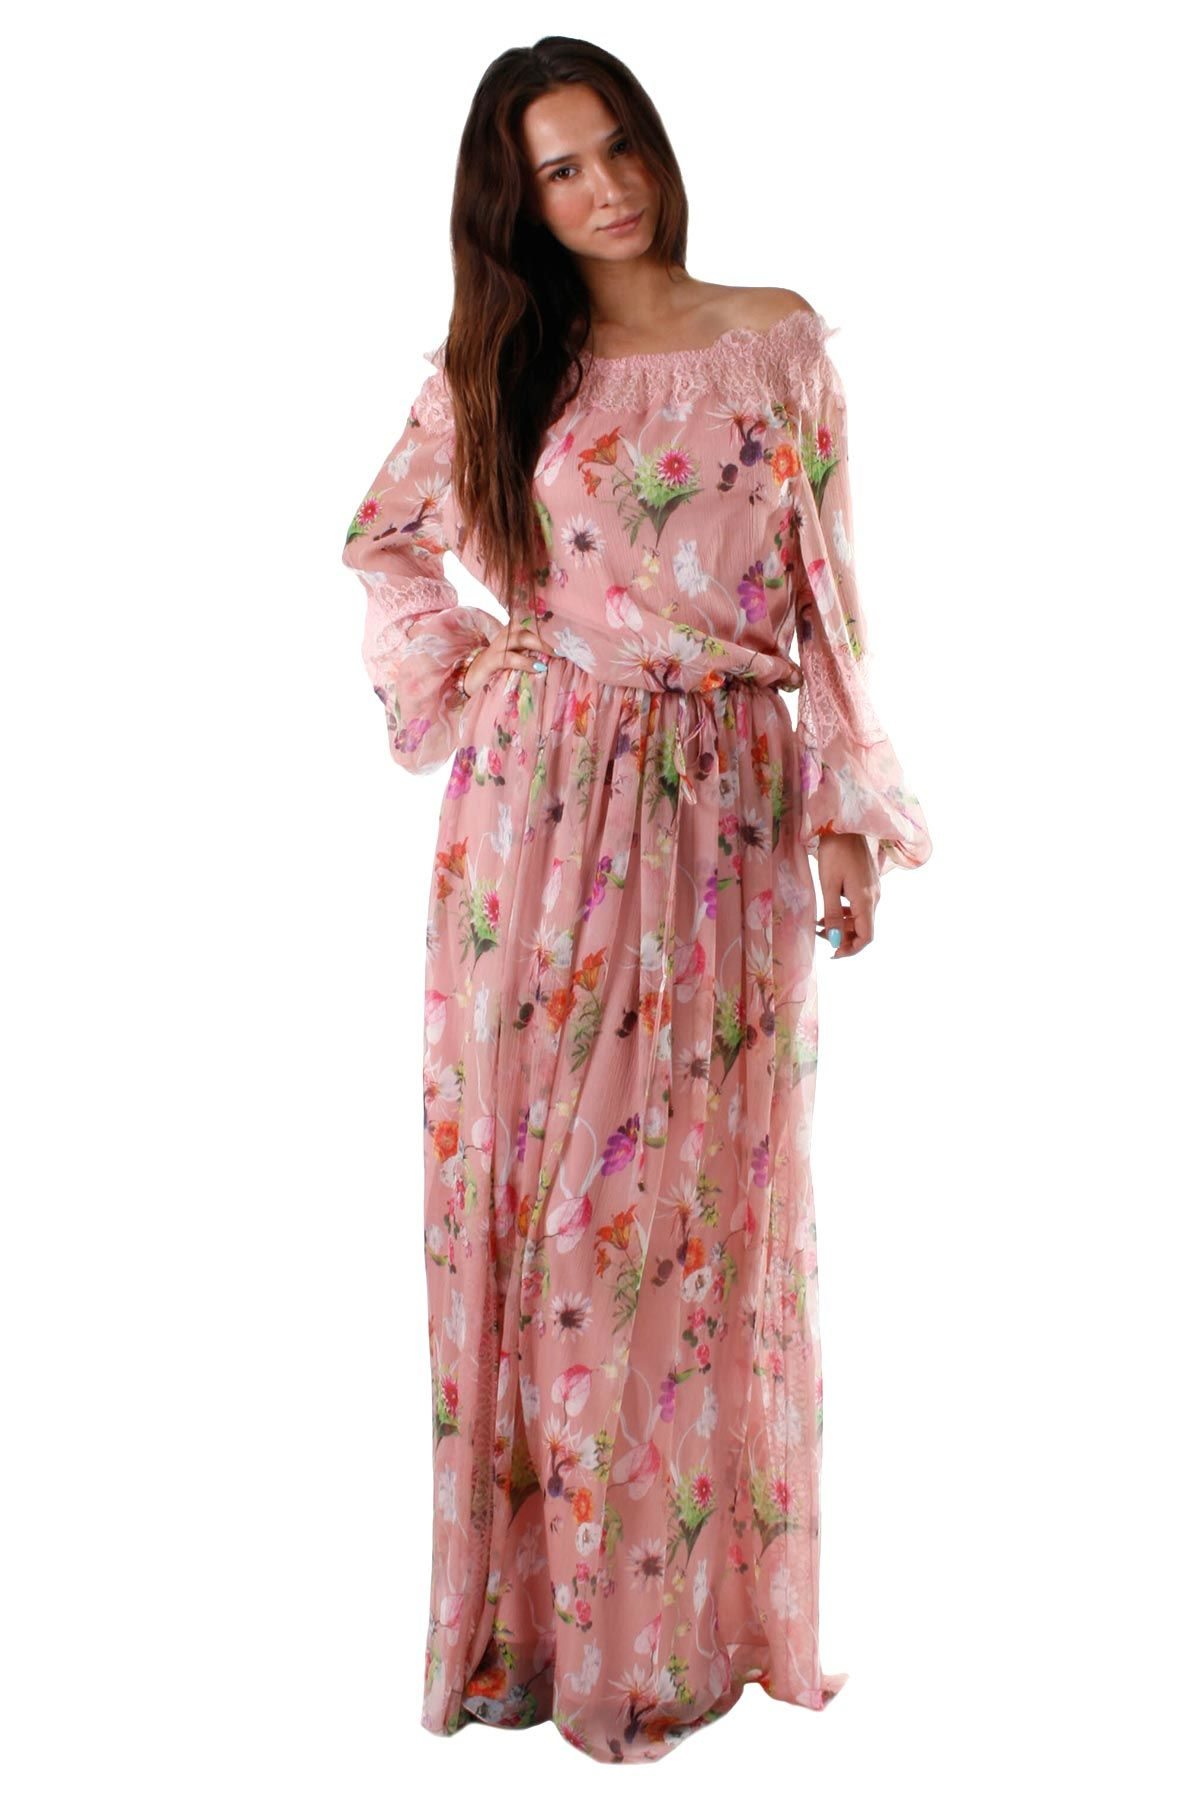 Blumarine Old Rose Floral Kaftano Dress